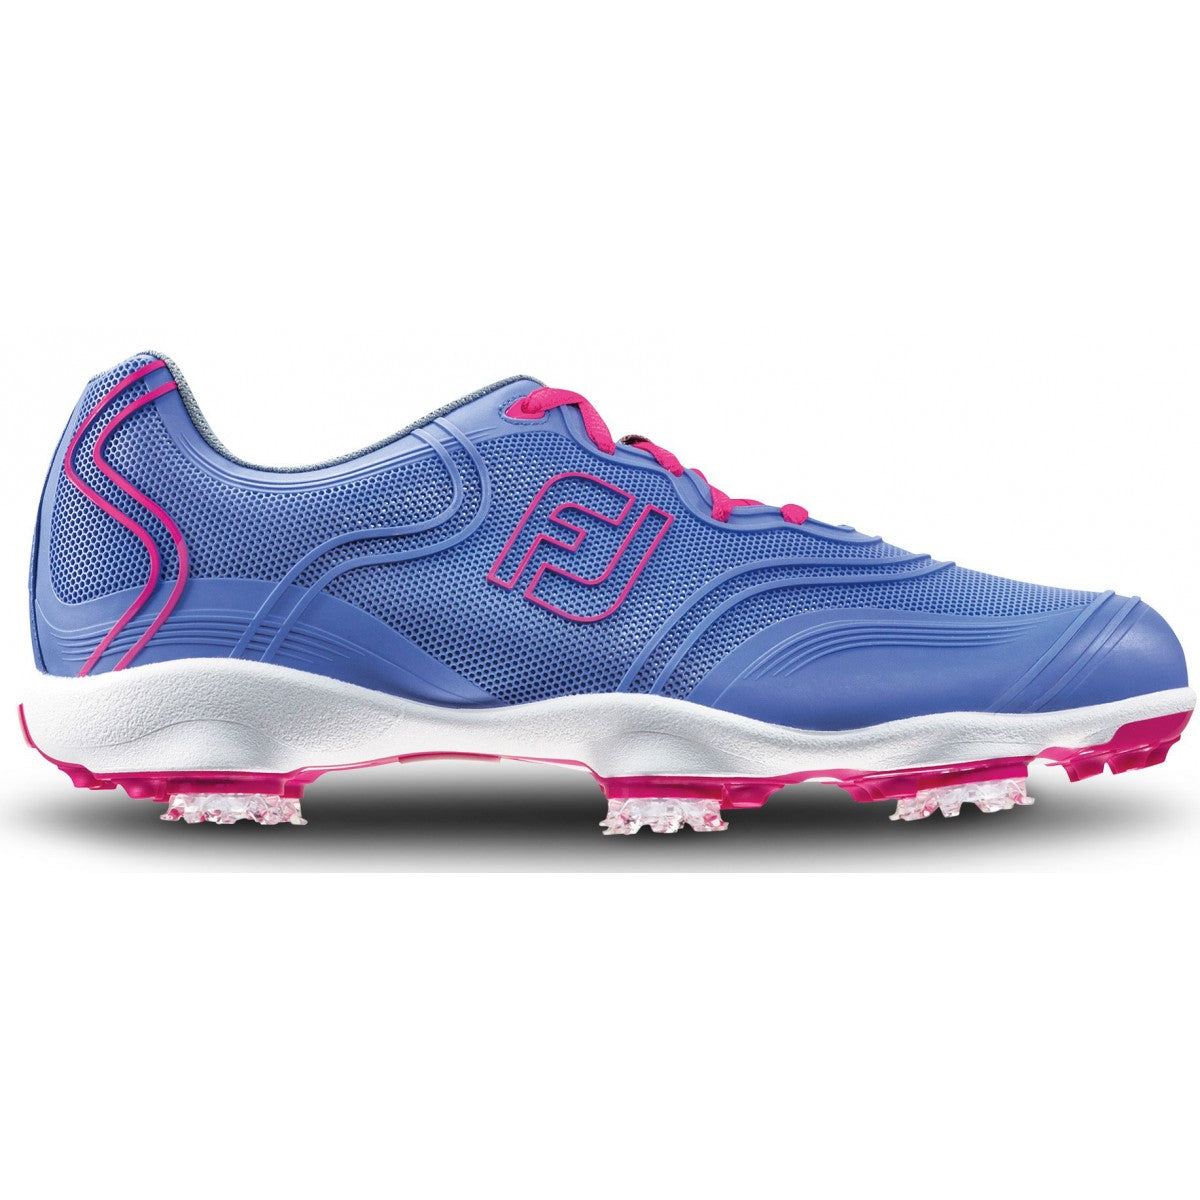 Footjoy Aspire Shoes